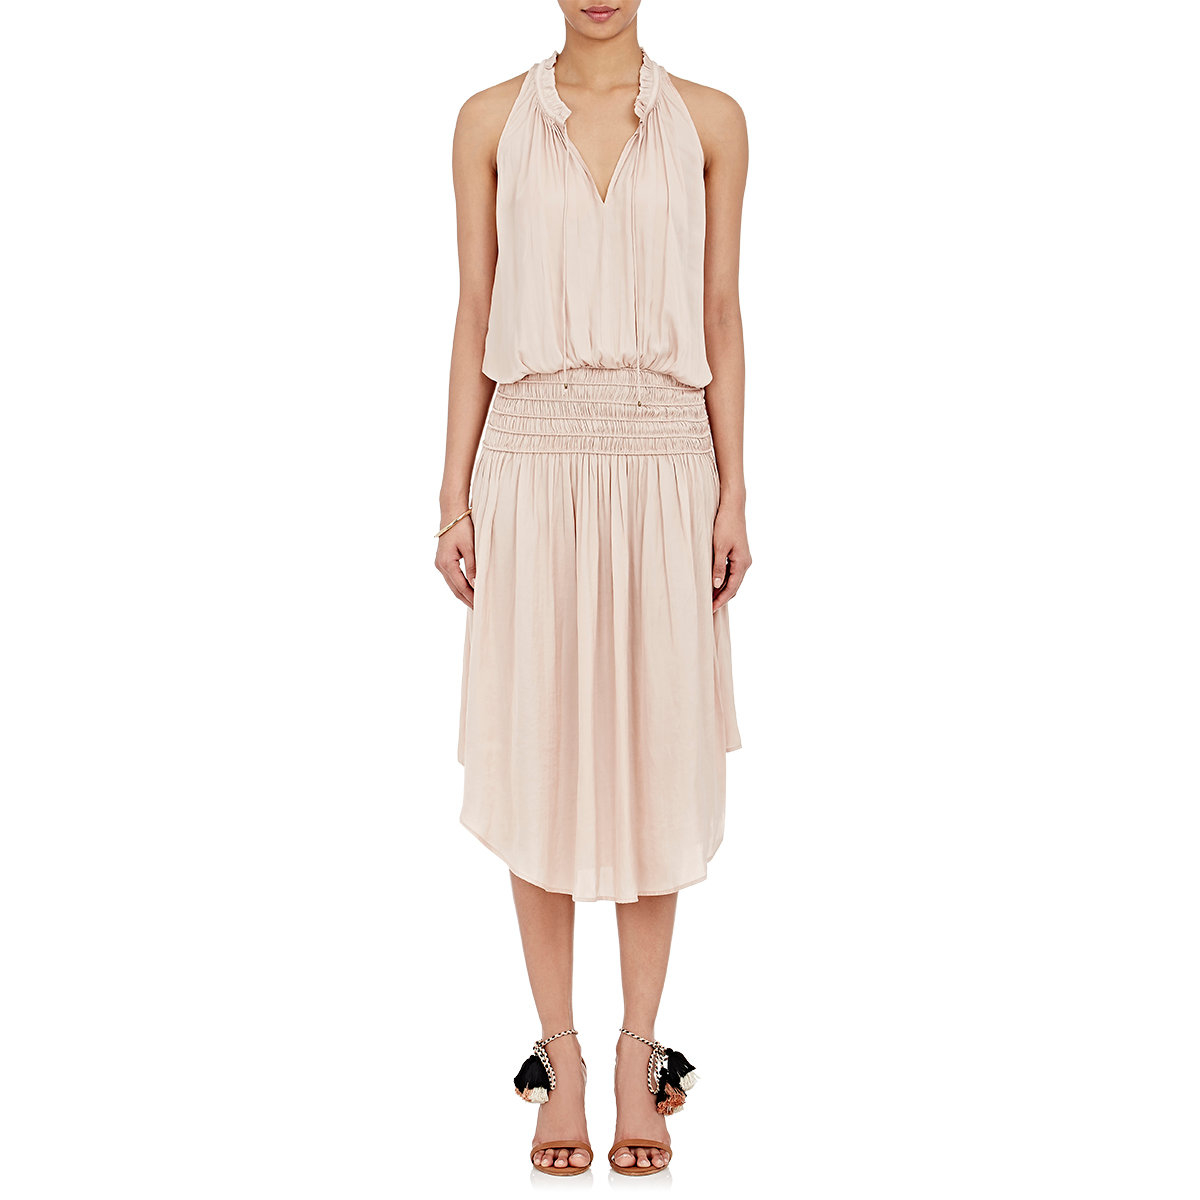 Cleo S Clothing: Ulla Johnson Women's Cleo Maxi Dress In Pink